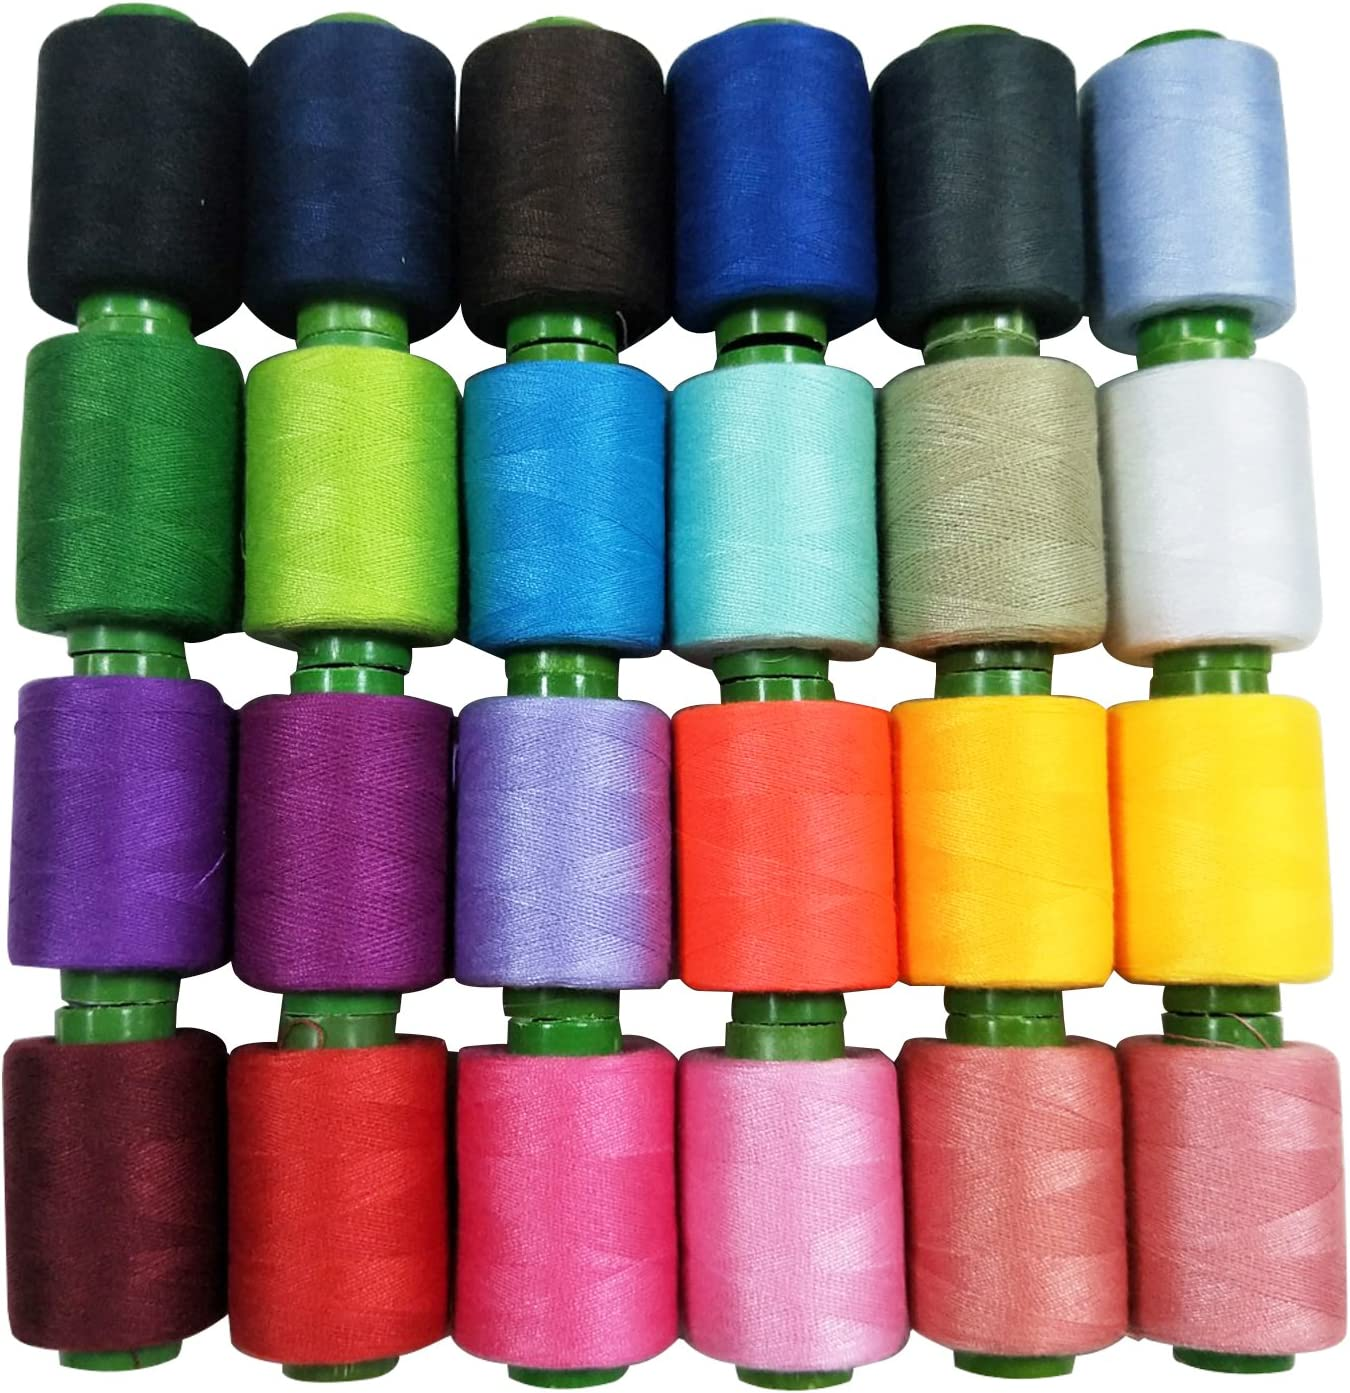 Polyester Thread//Embroidery Thread//Overlocking Thread Kit for Machine Sewing and Hand Stitching MOAMUN Sewing Thread Coil 24 Assorted Colour 800 Yards Each Thread Reel